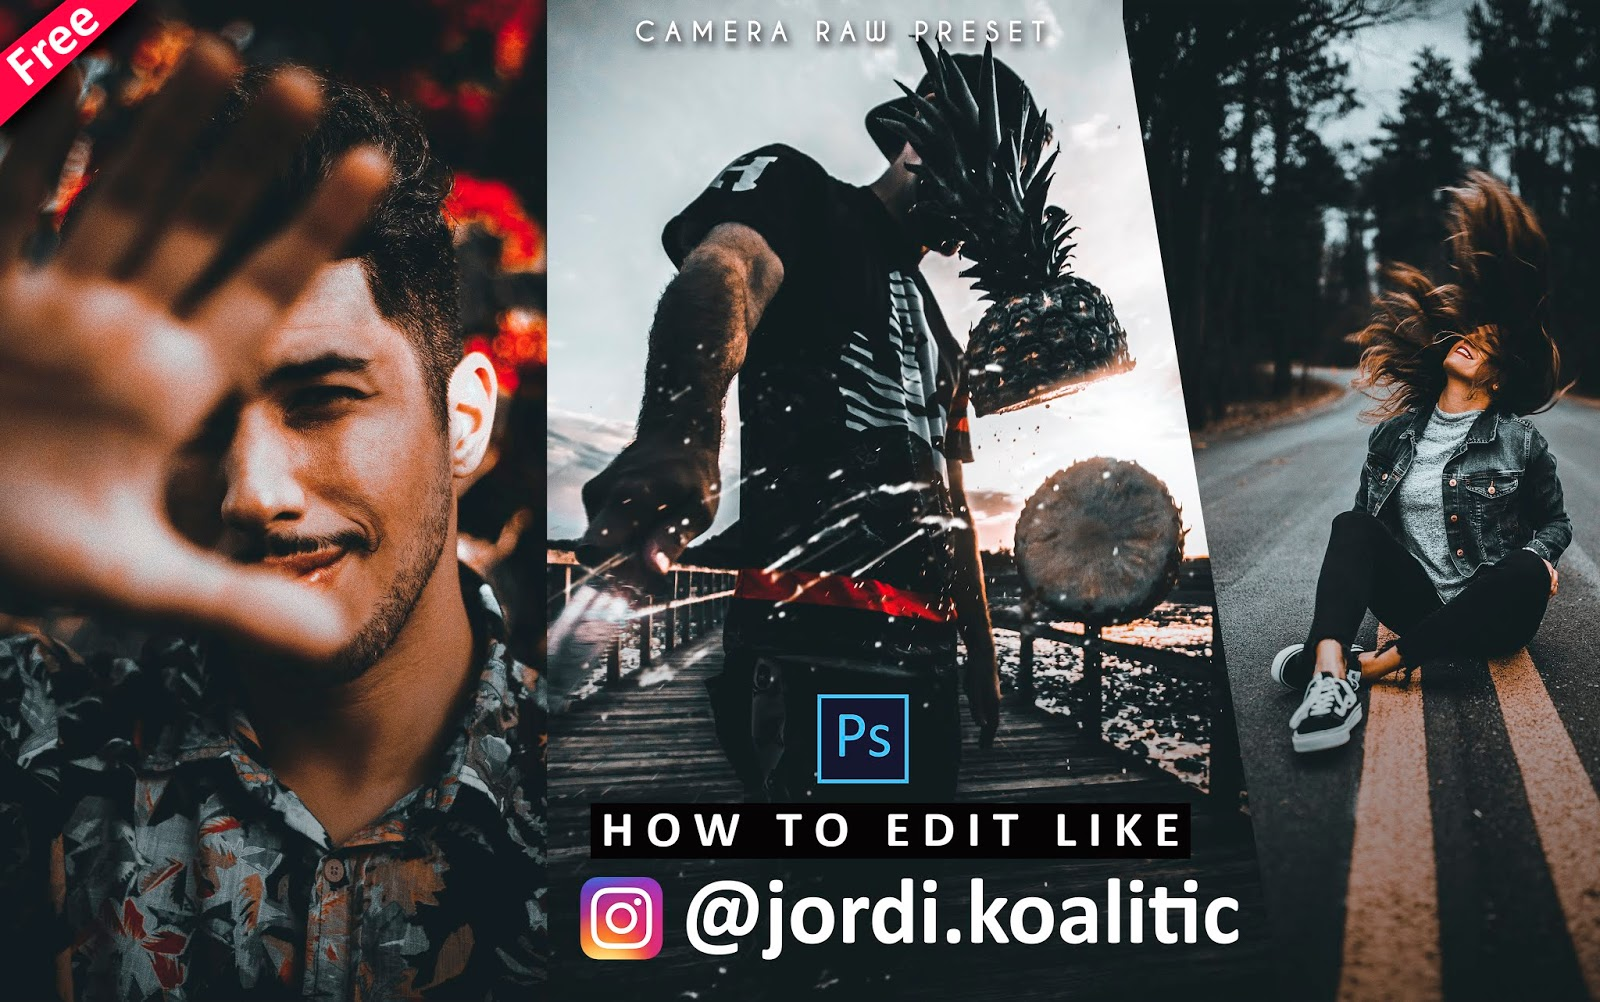 Download Jordi Koalitic Camera Raw Preset for Free | How to Edit Your Photos Like Jordi Koalitic in Photoshop